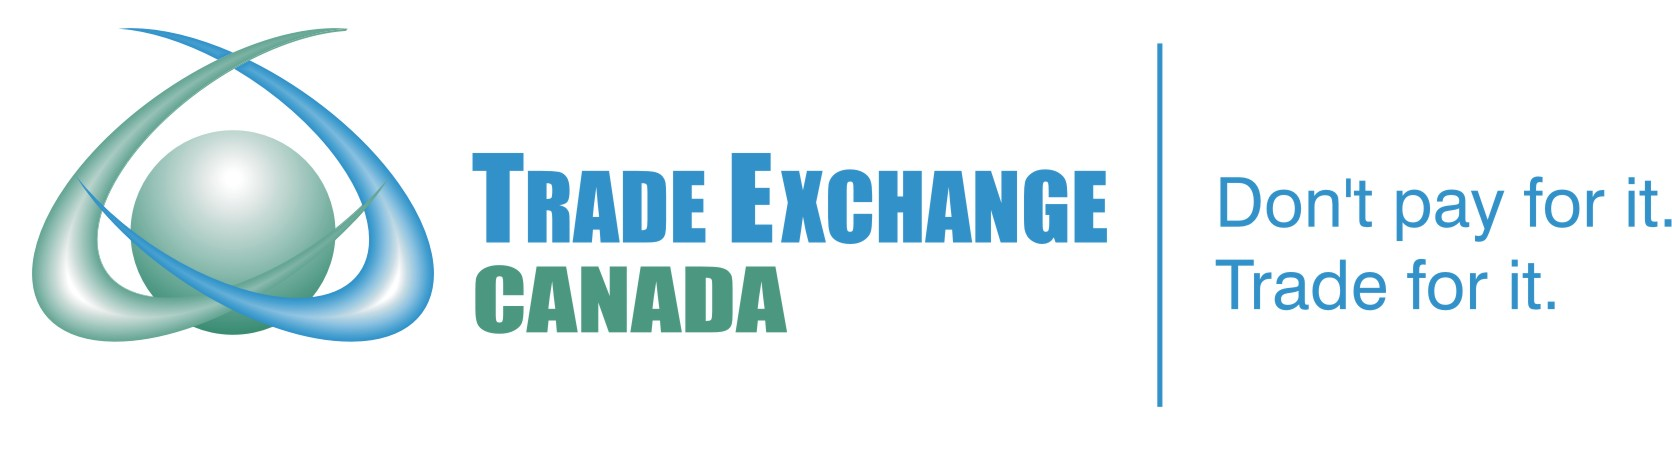 Trade Exchange Canada business trade and barter